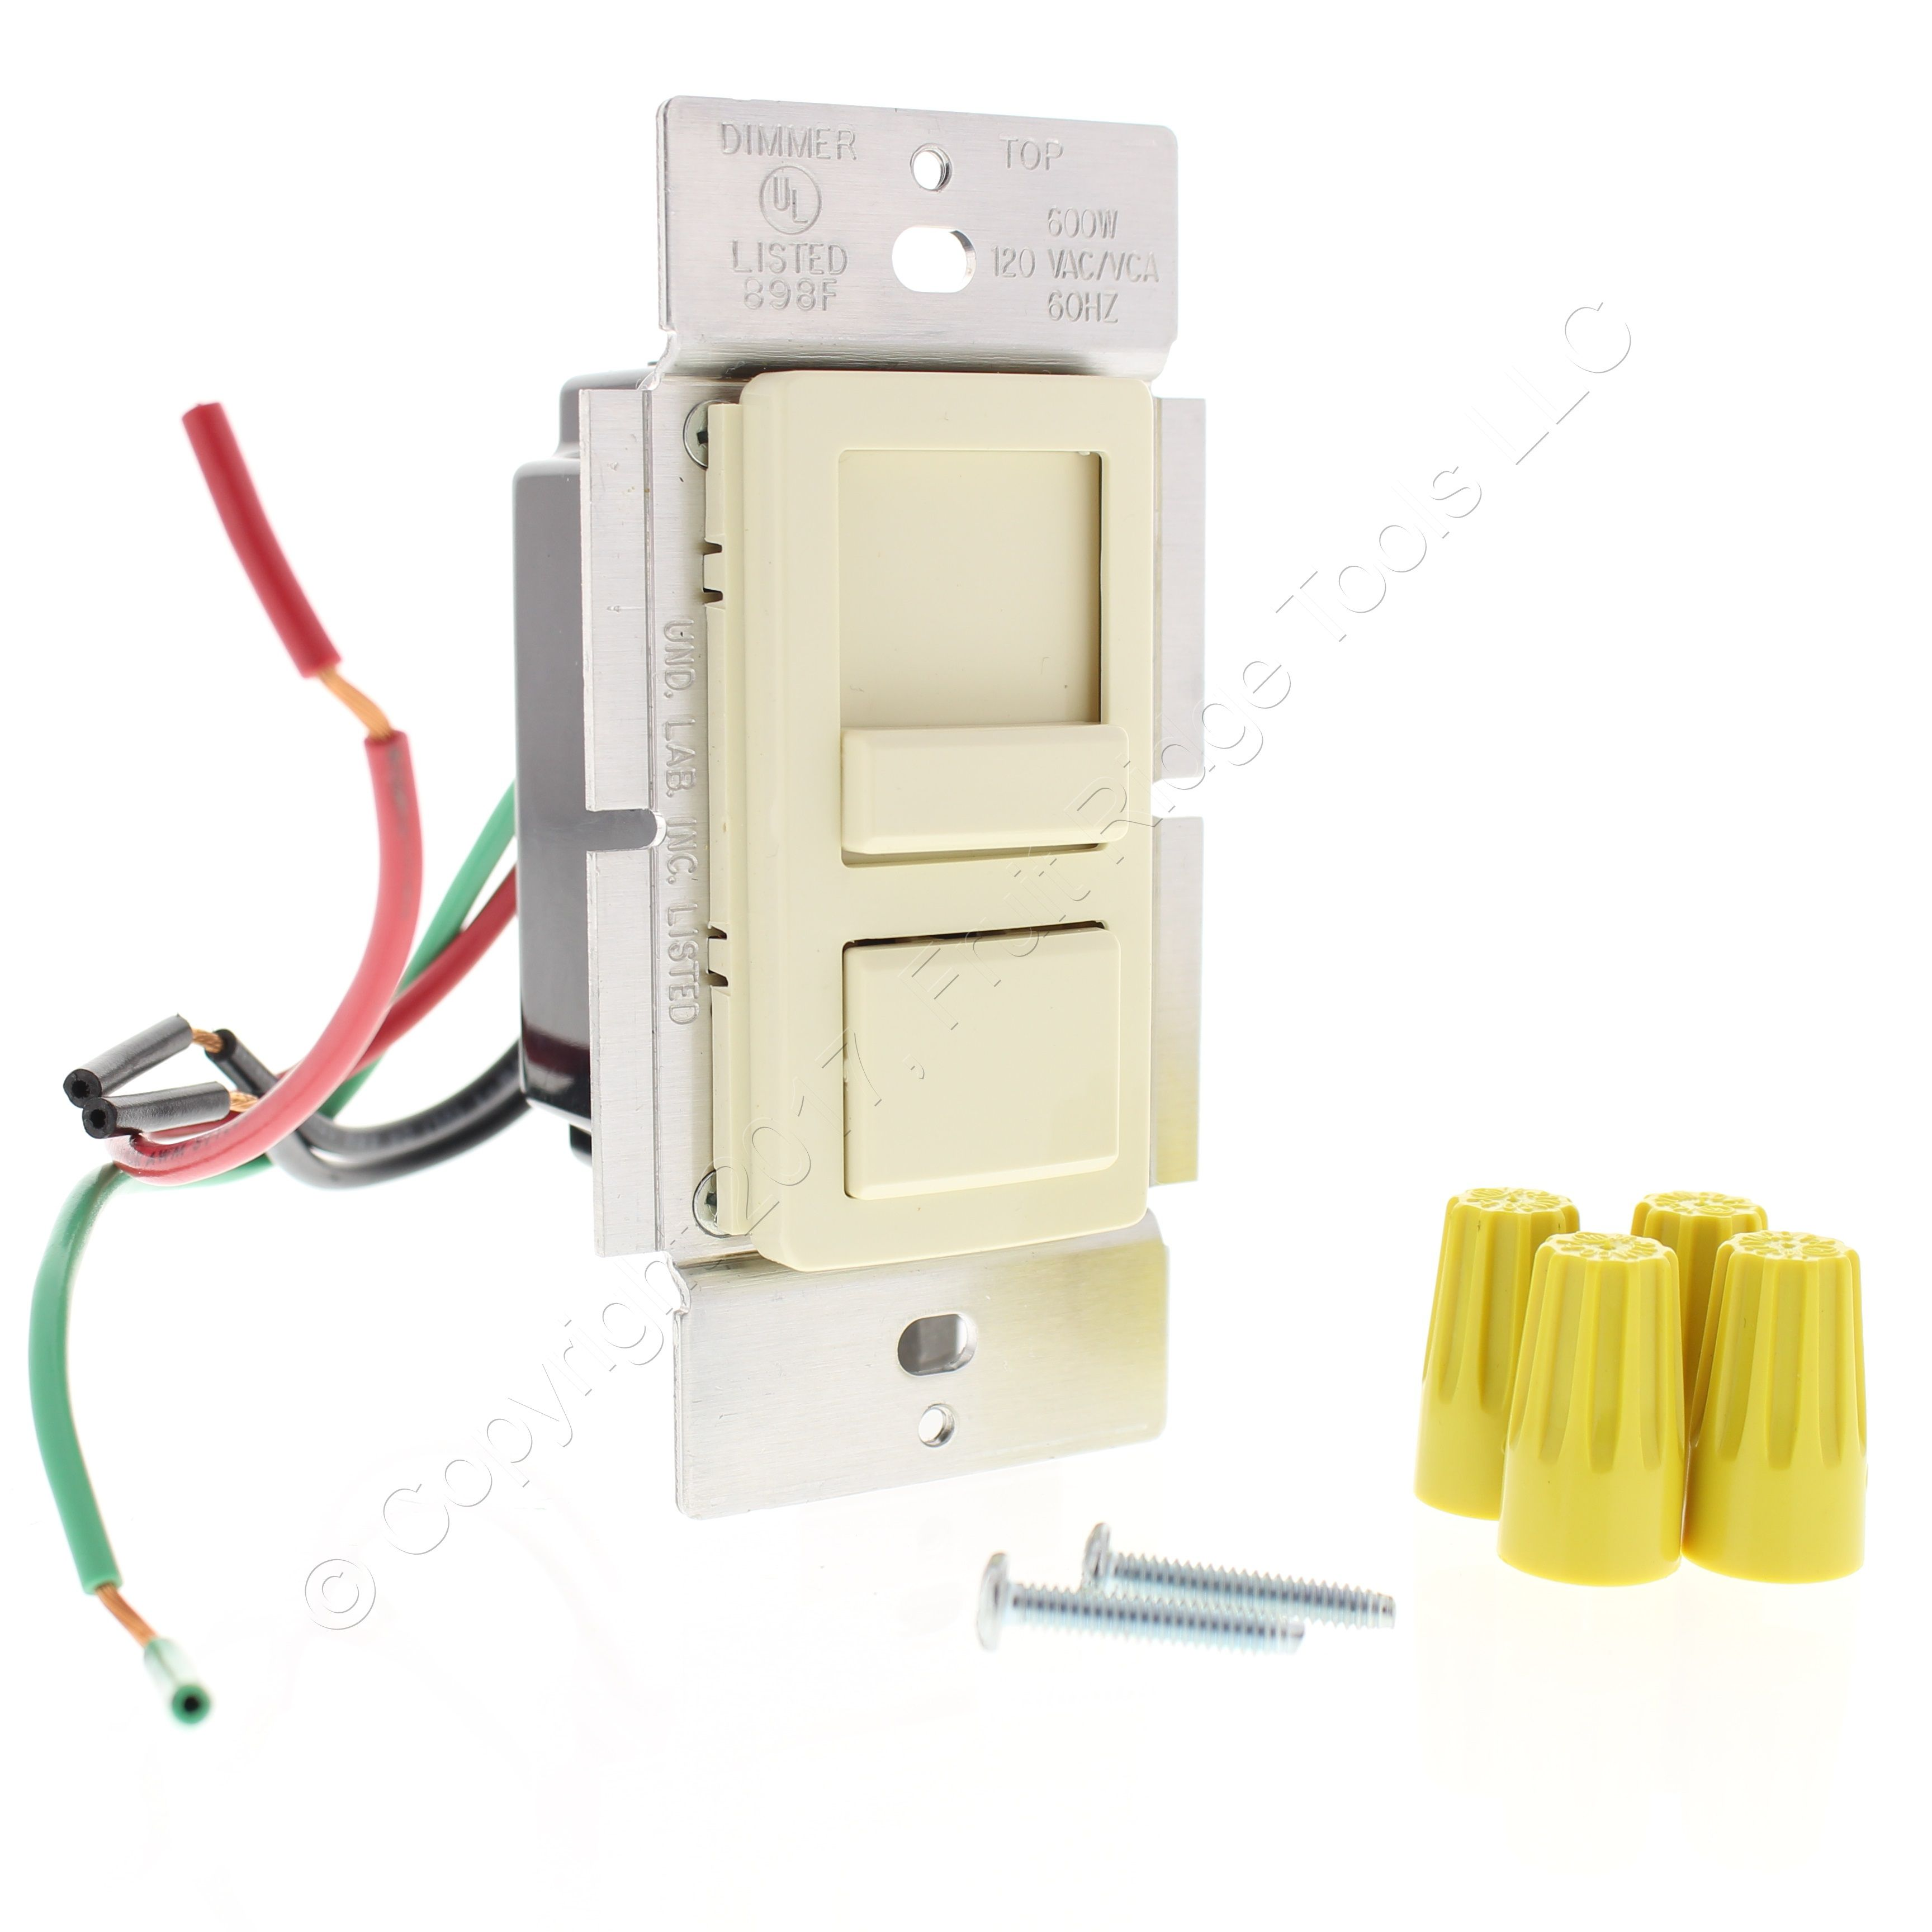 New Leviton Almond Incandescent Preset 3 Way Slide Dimmer Switch 2 Dimmers 600w Ipi06 10a